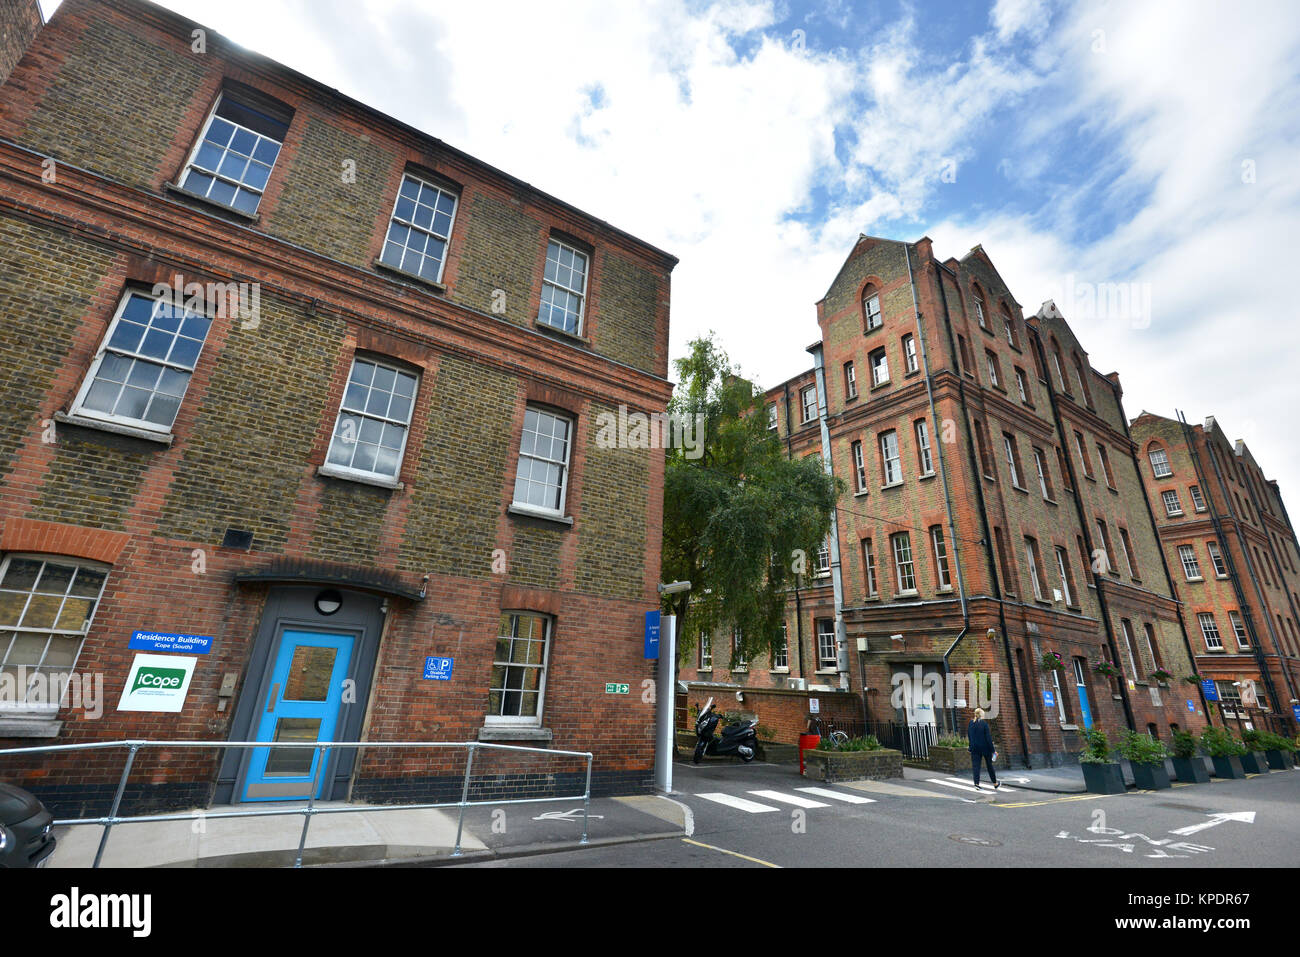 St Pancras Hospital, London - Stock Image